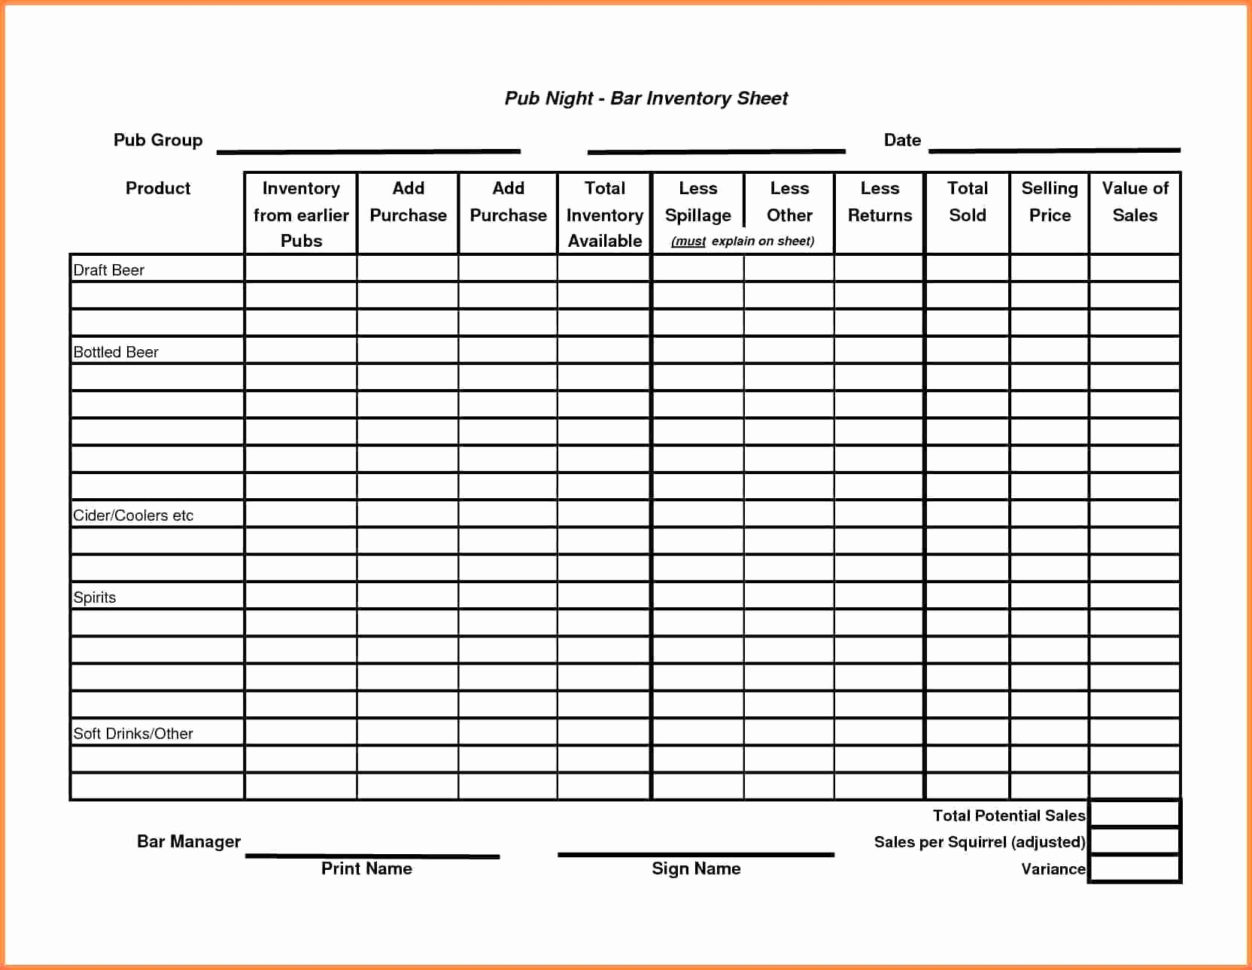 Liquor Inventory Control Spreadsheet Lovely Liquor Inventory To Bar Inventory Templates